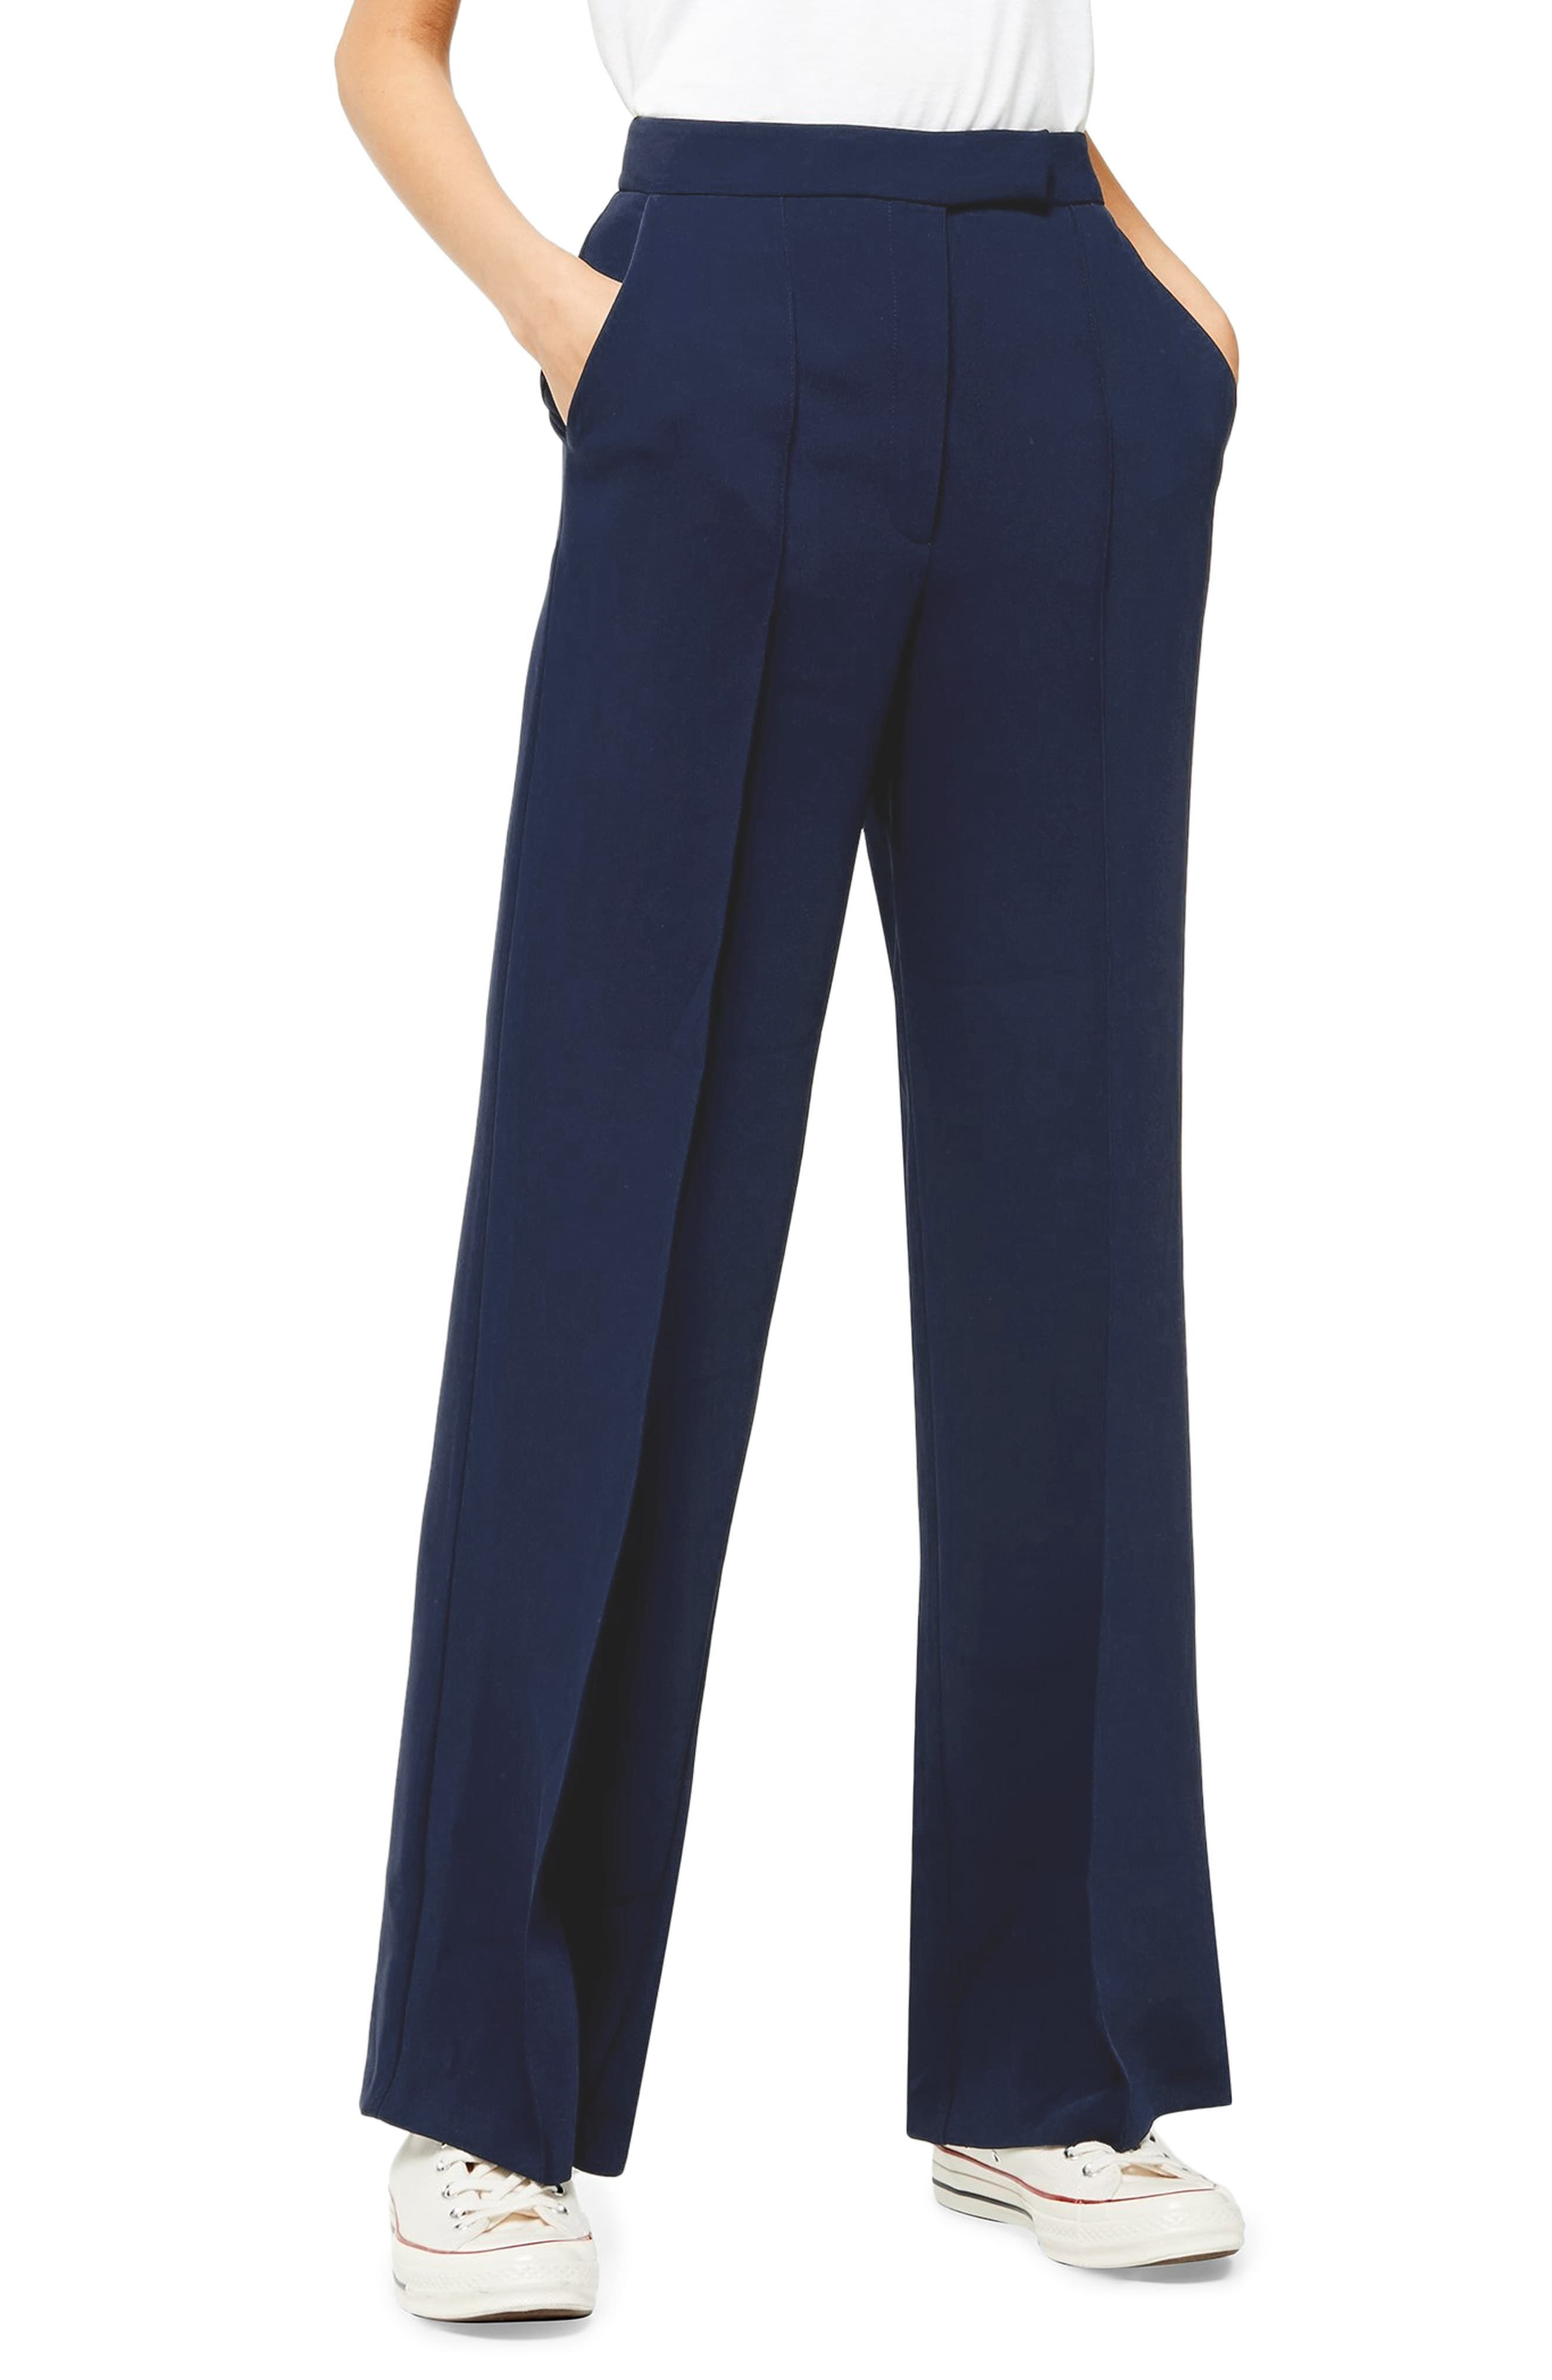 Blue wide leg trousers in size 10 and 12 new